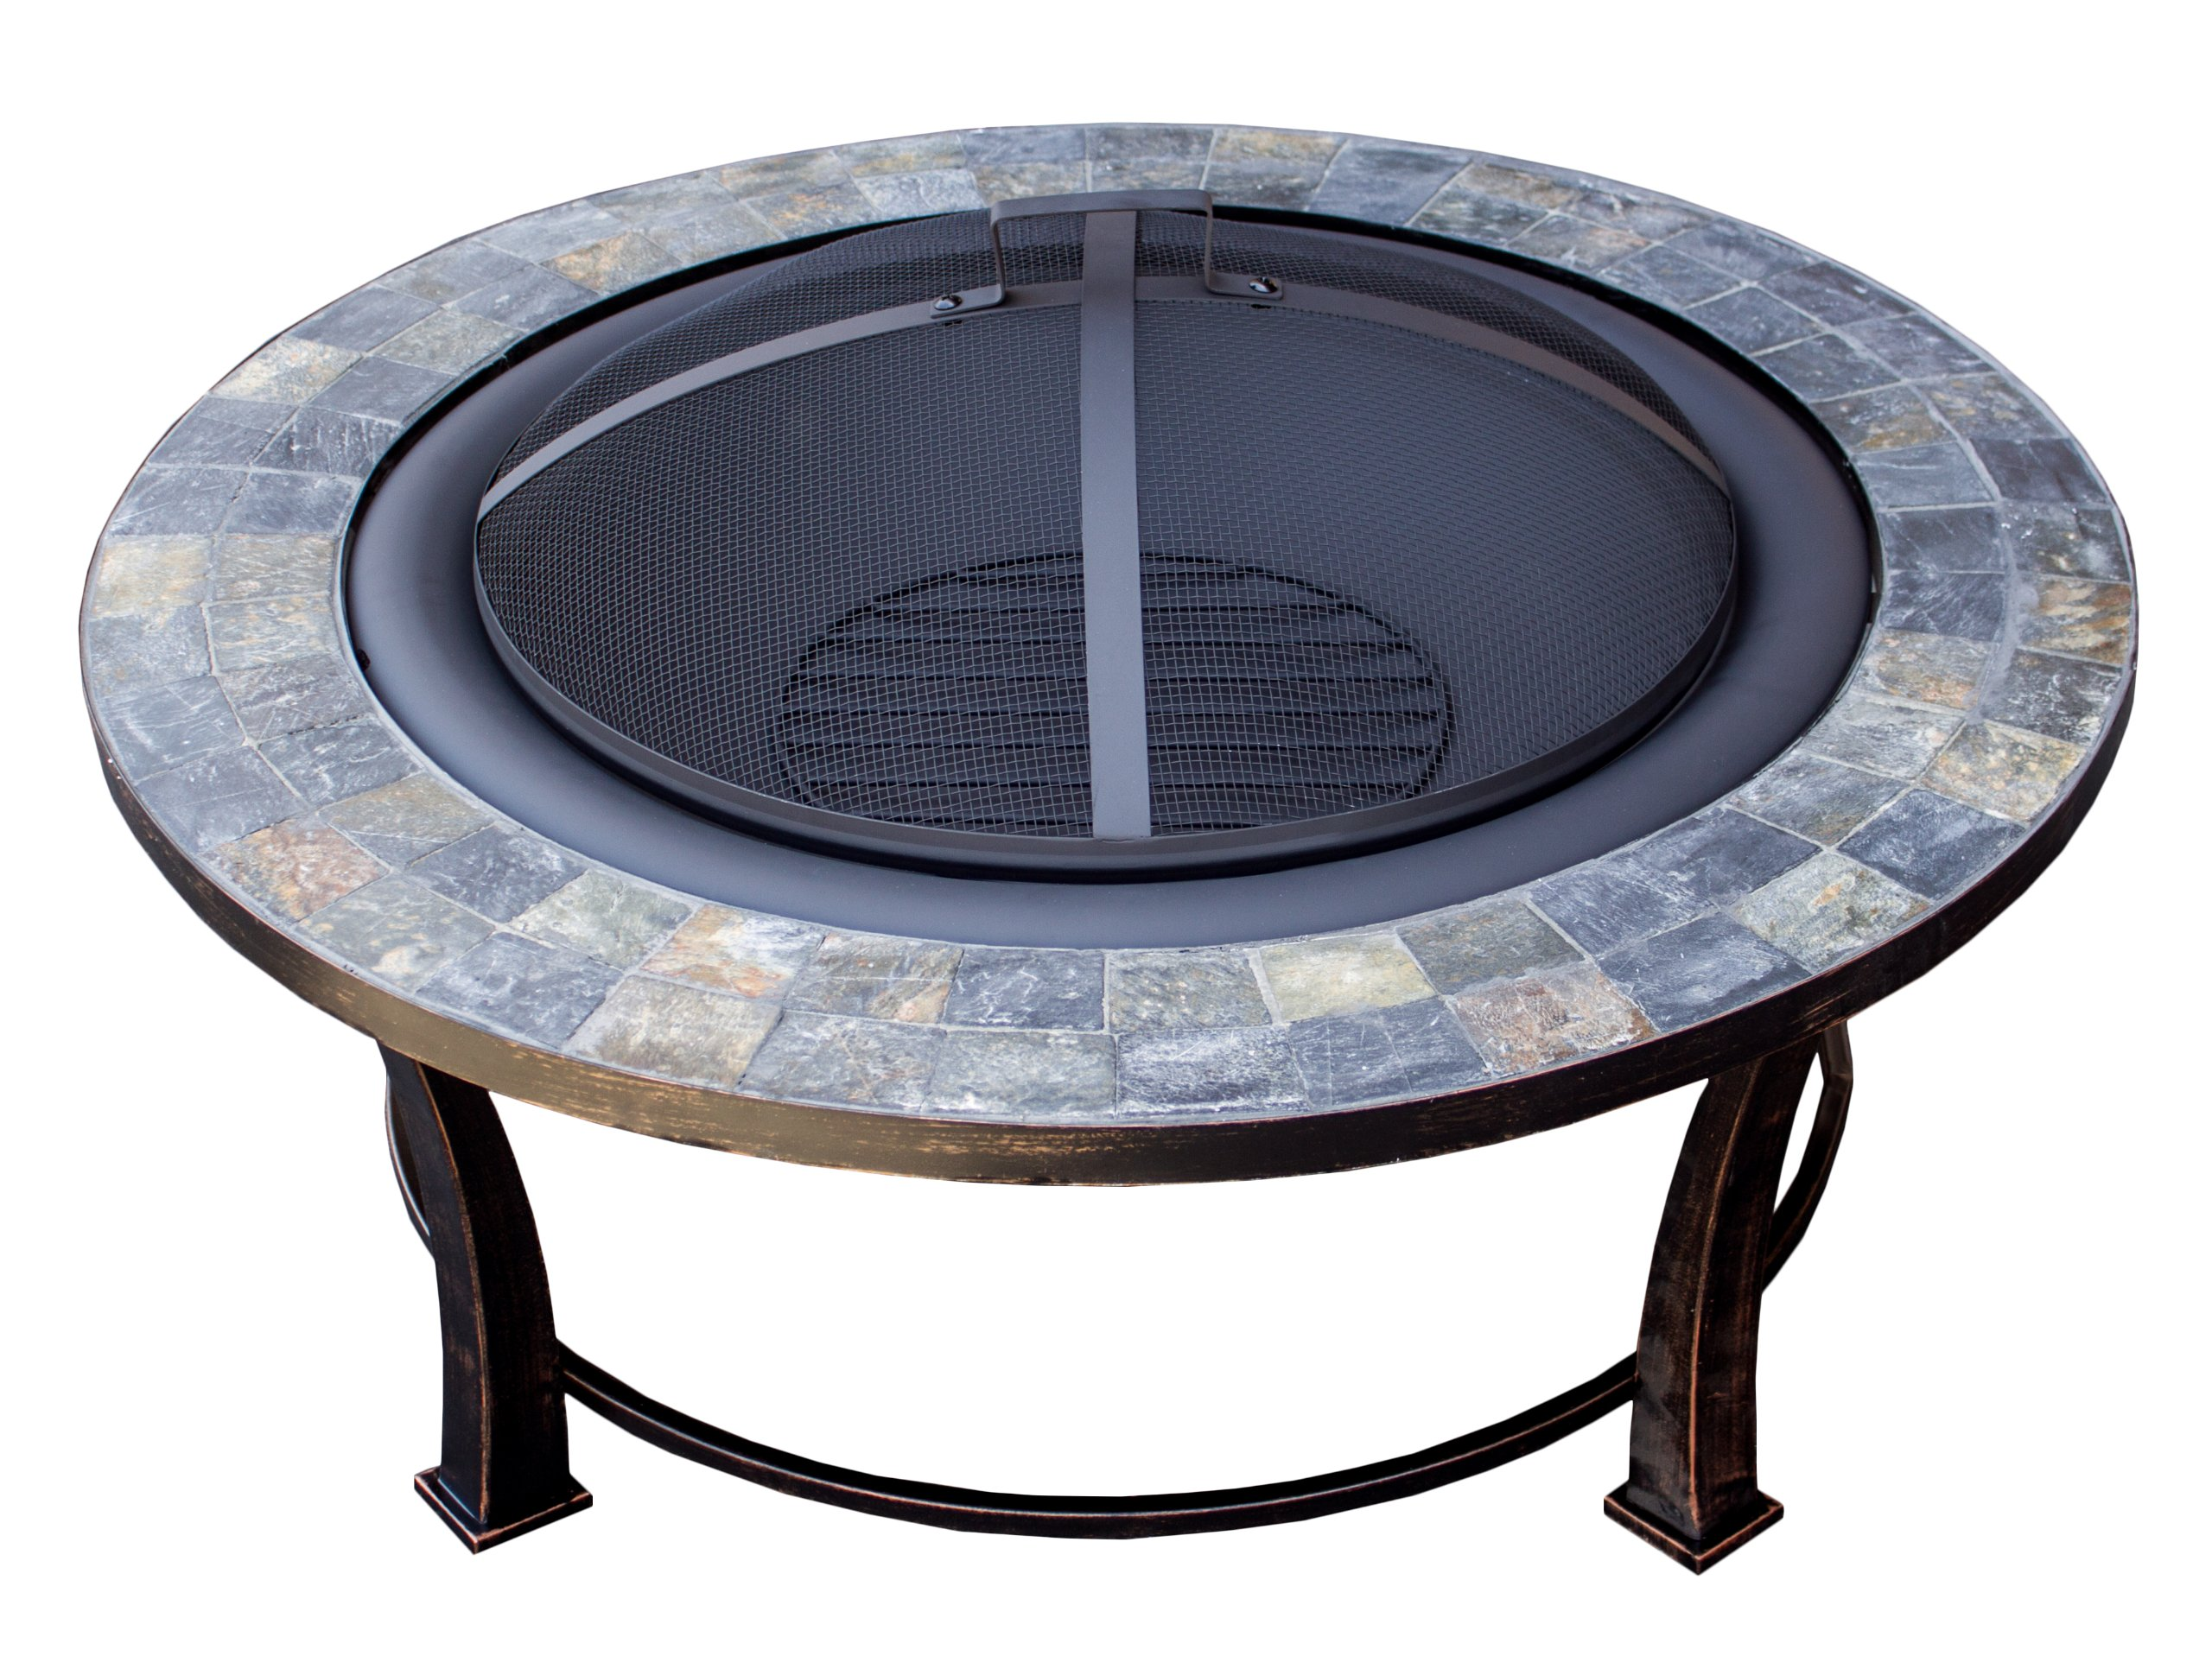 Hiland FT51216 Burning Fire Pit w/Wood Grate and Domed Mesh Screen Lid, Medium, Stone